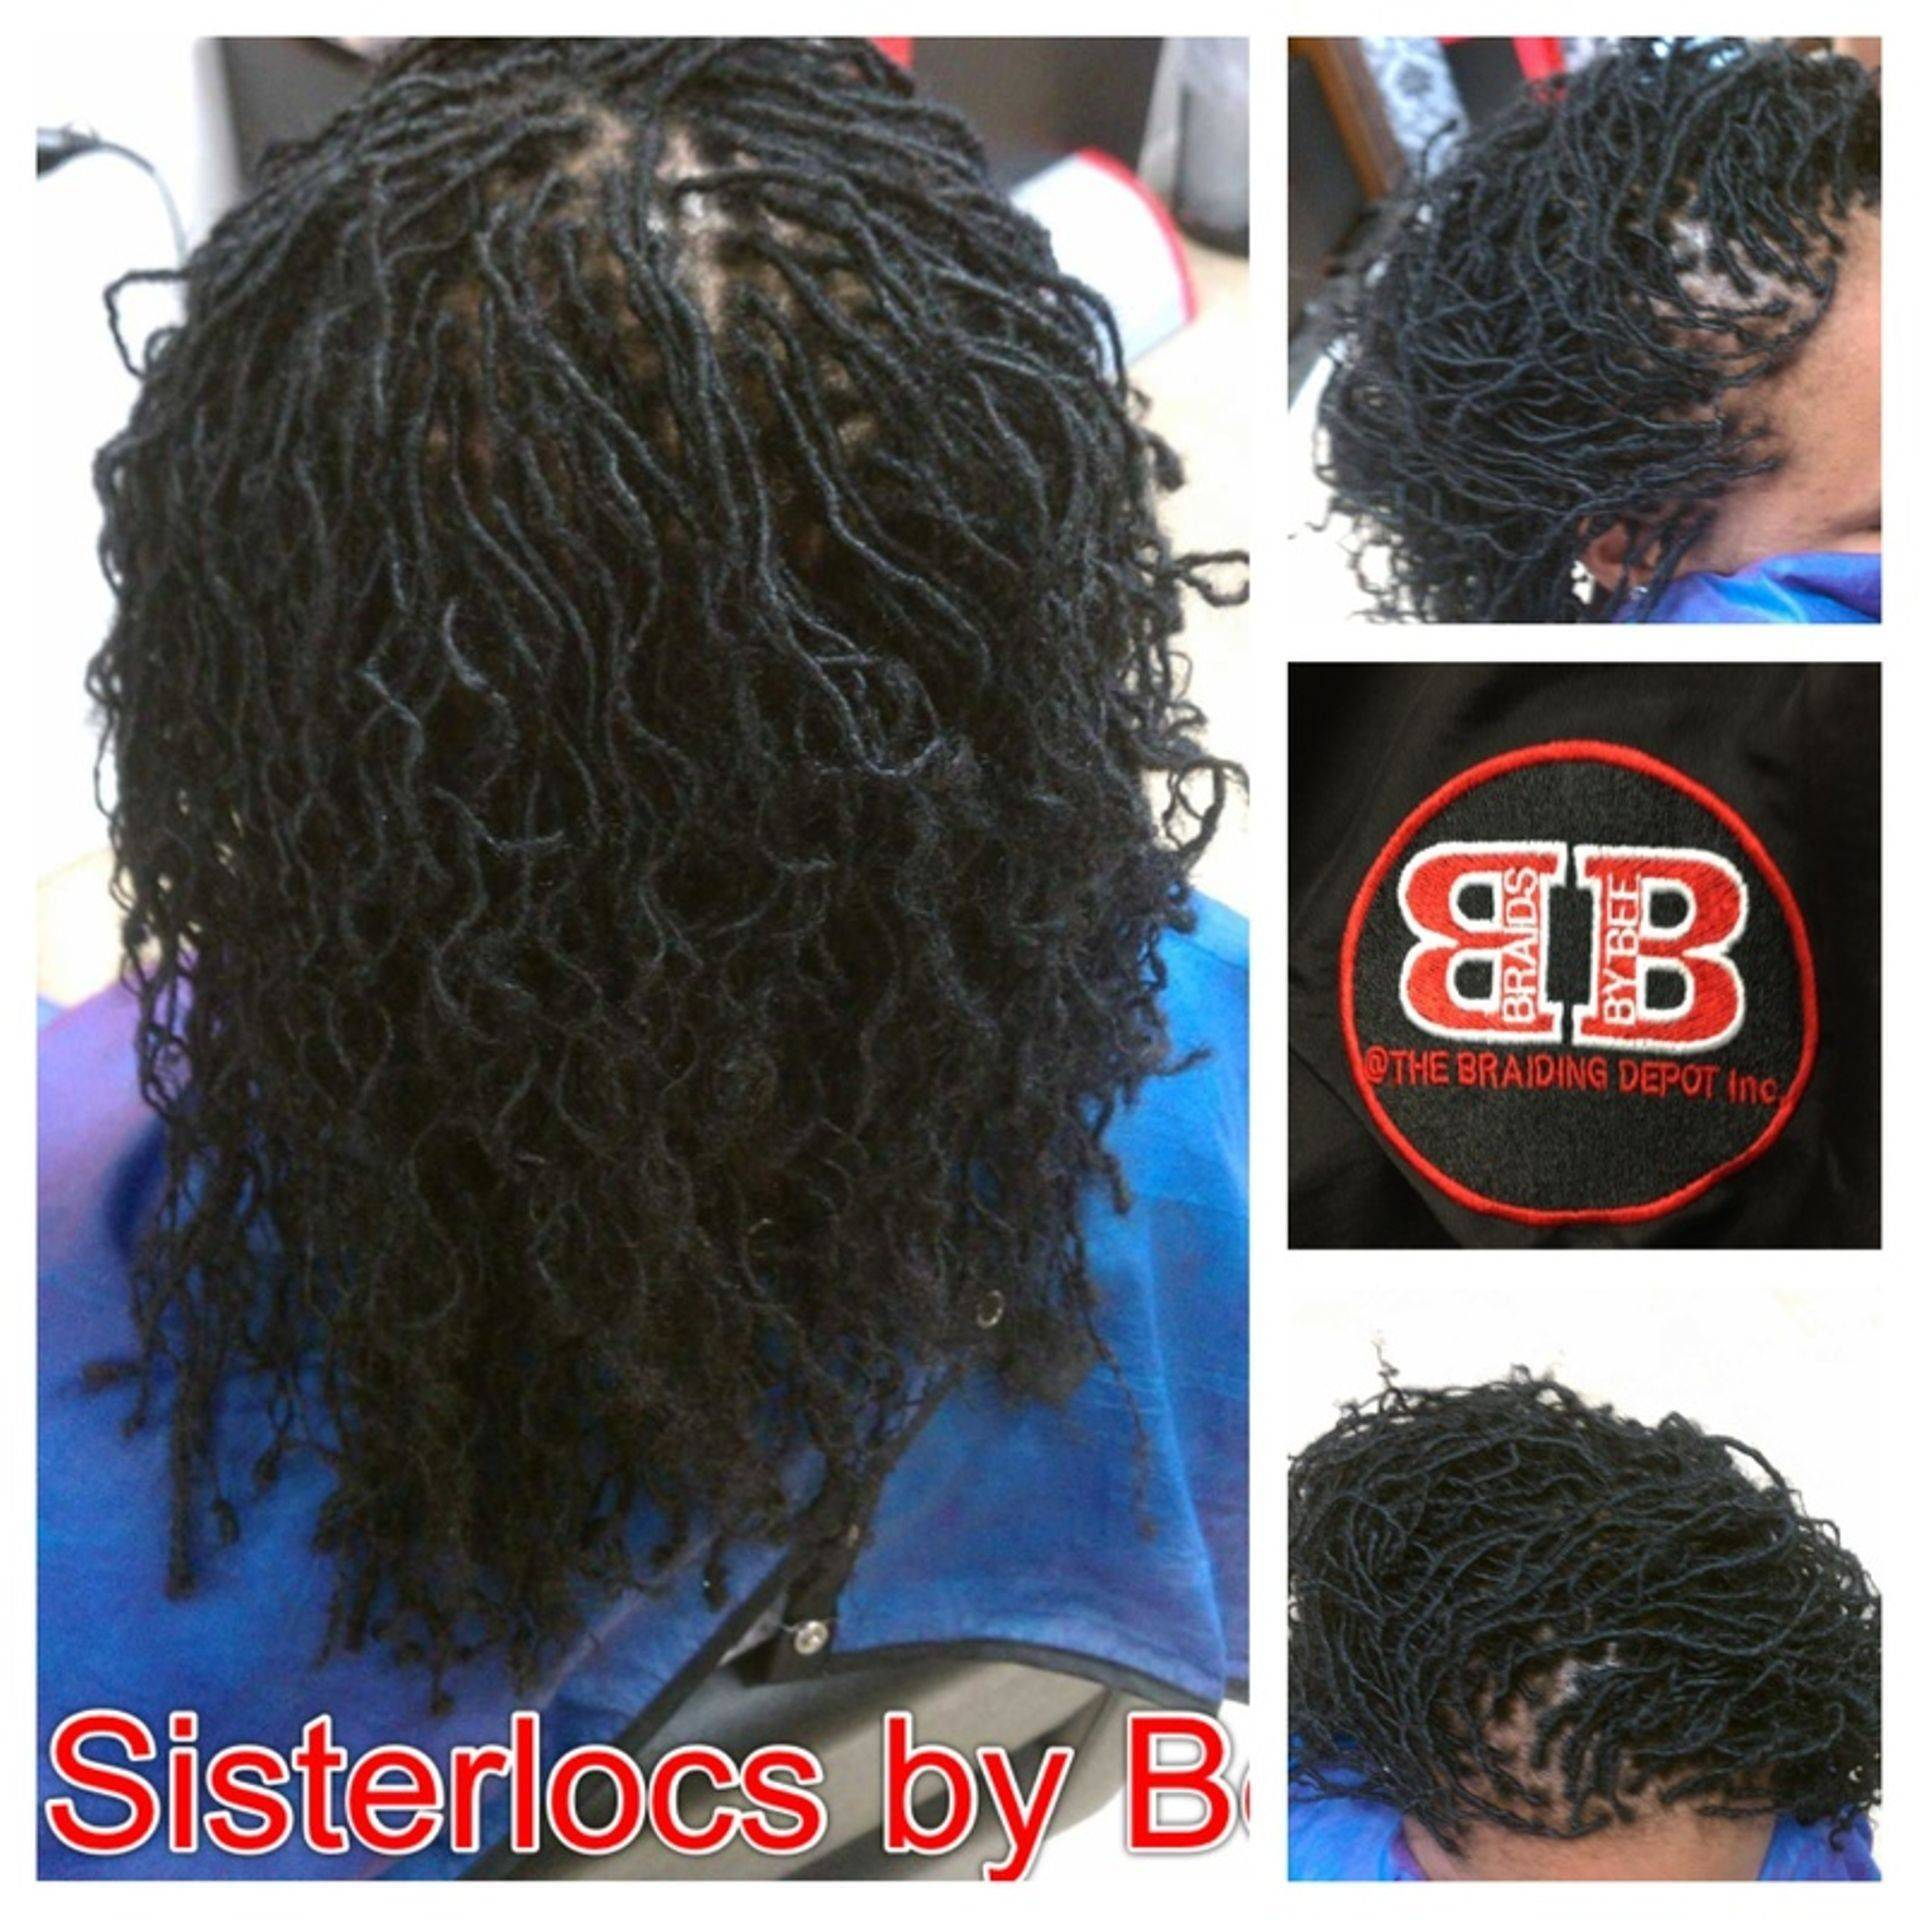 Braids By Bee starts sisterlocs dreads with InstantLoc Dread Extensions because client had permed hair prior